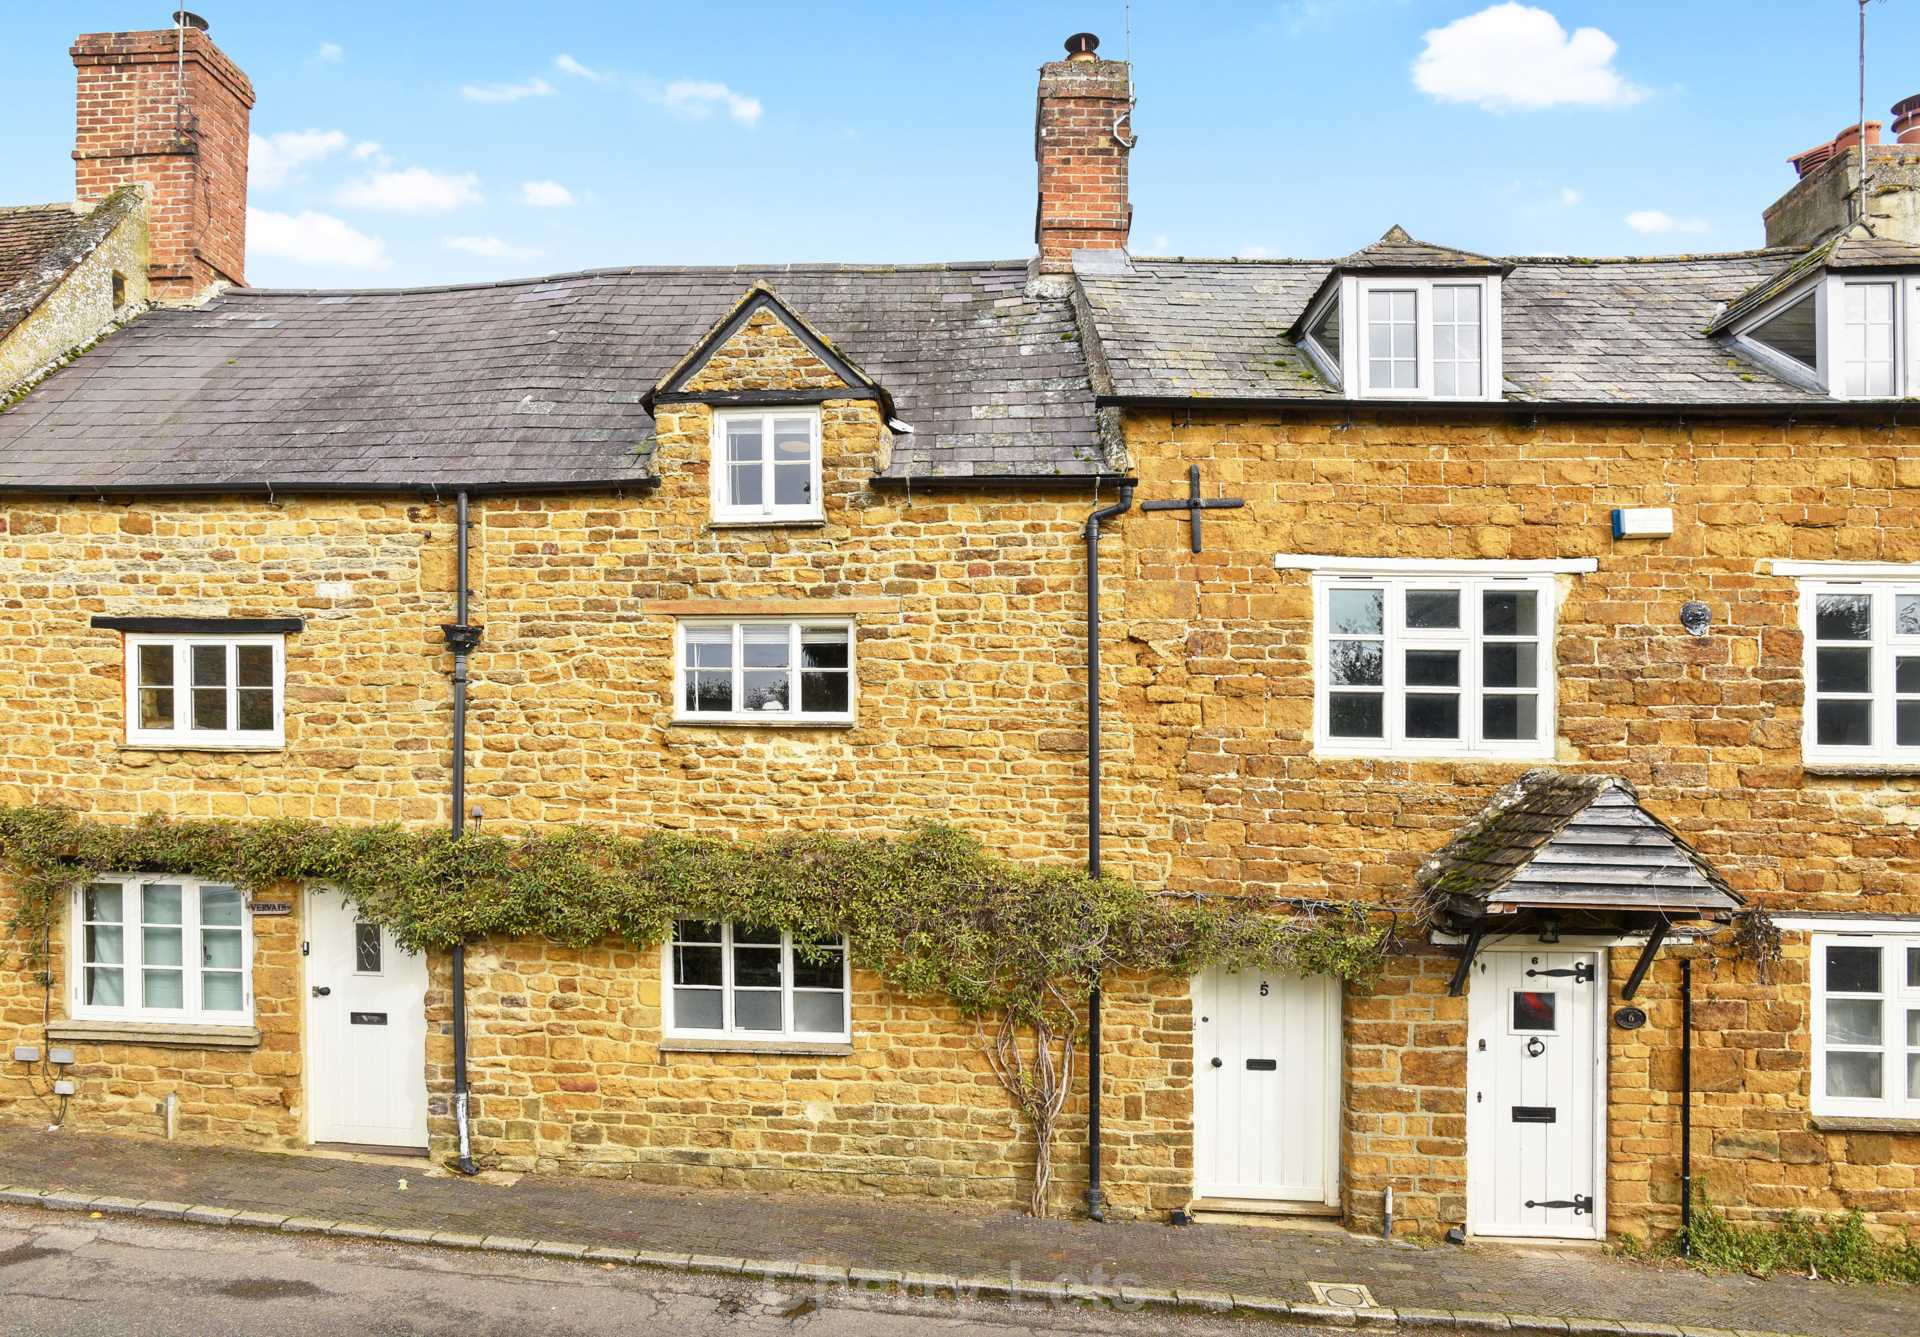 2 bed cottage to rent in Philcote Street, Deddington, OX15, OX15